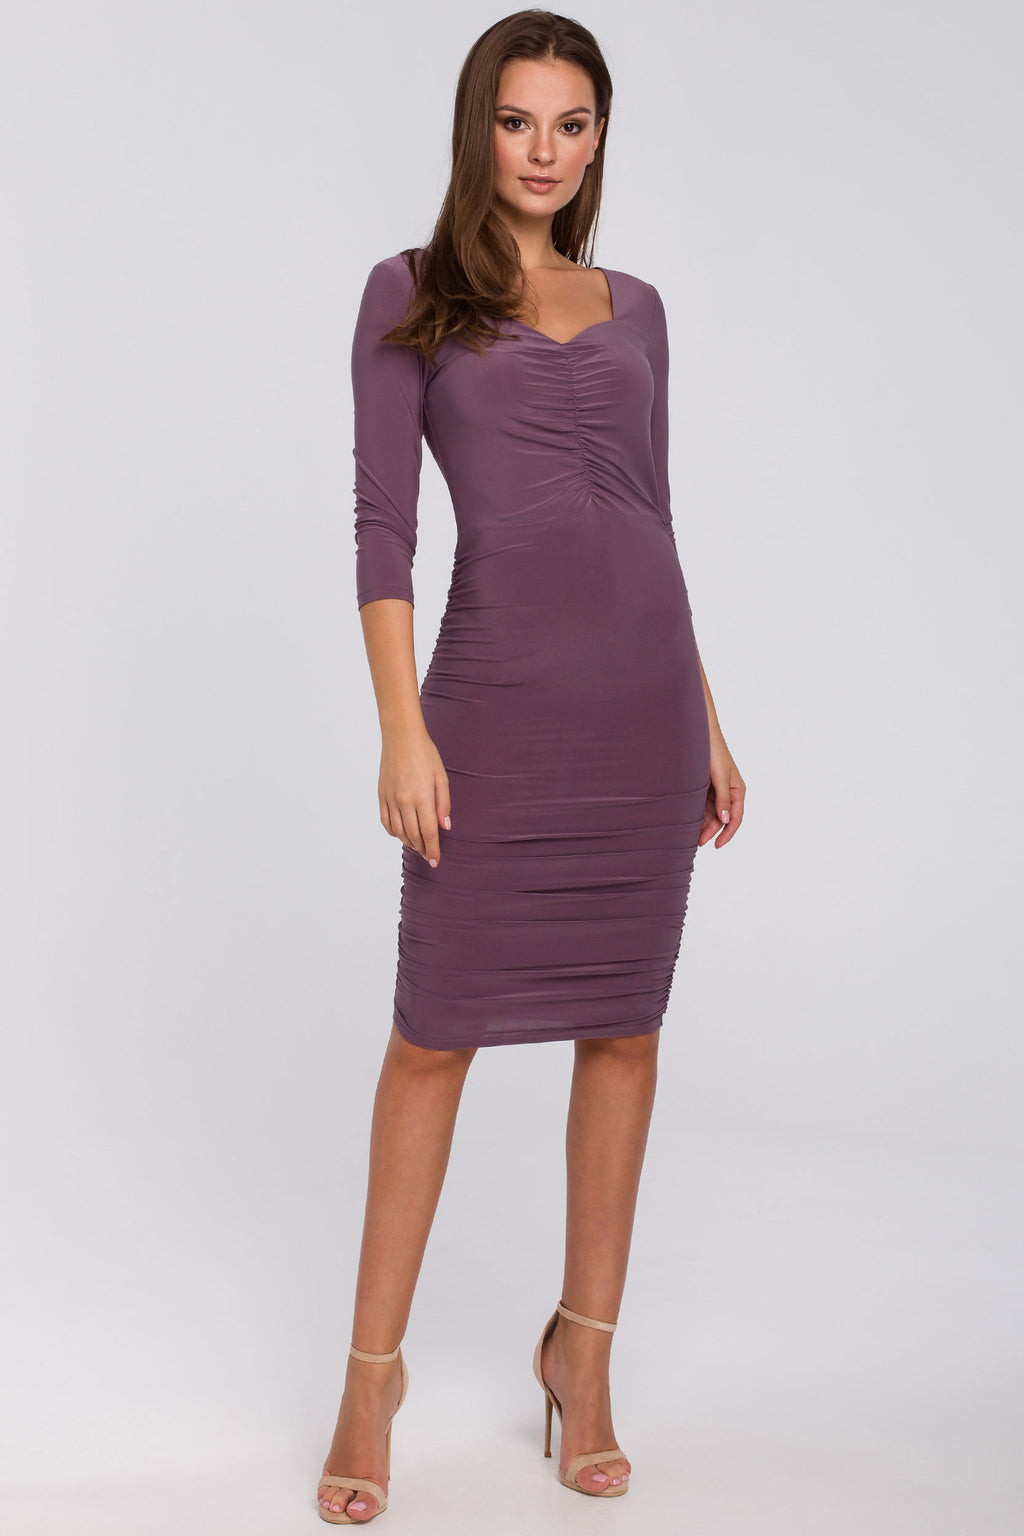 Purple Midi Dress With Ruched Detailing - So Chic Boutique